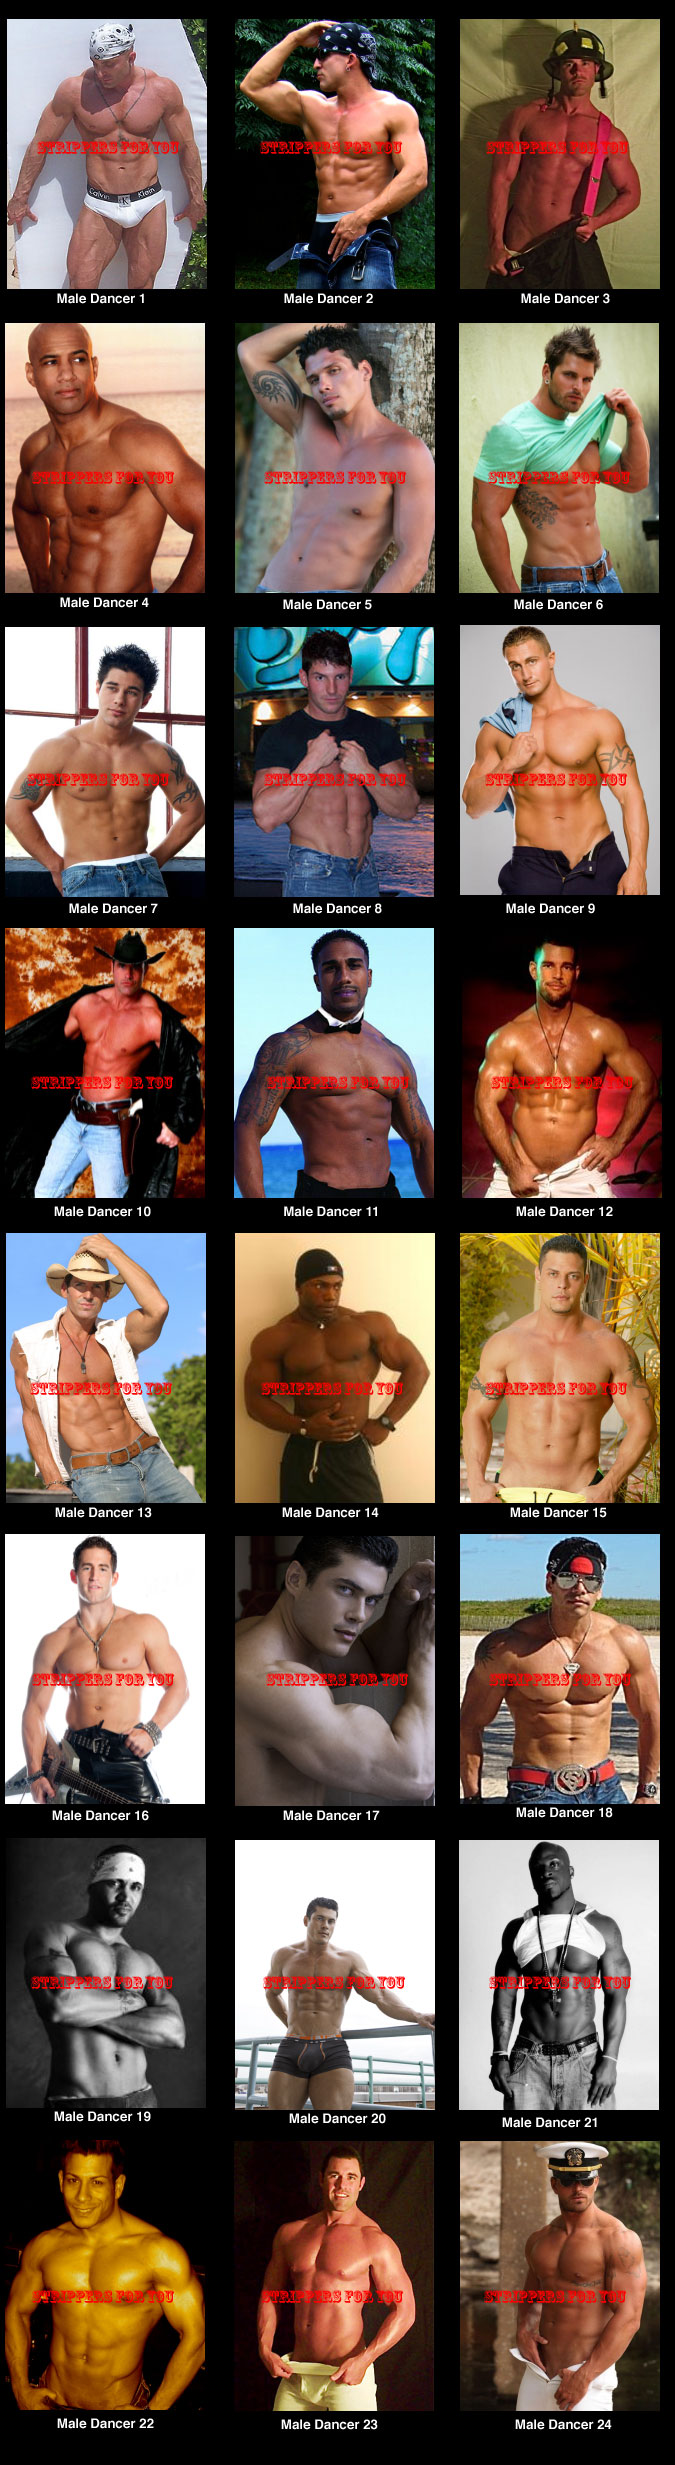 Seattle male strippers